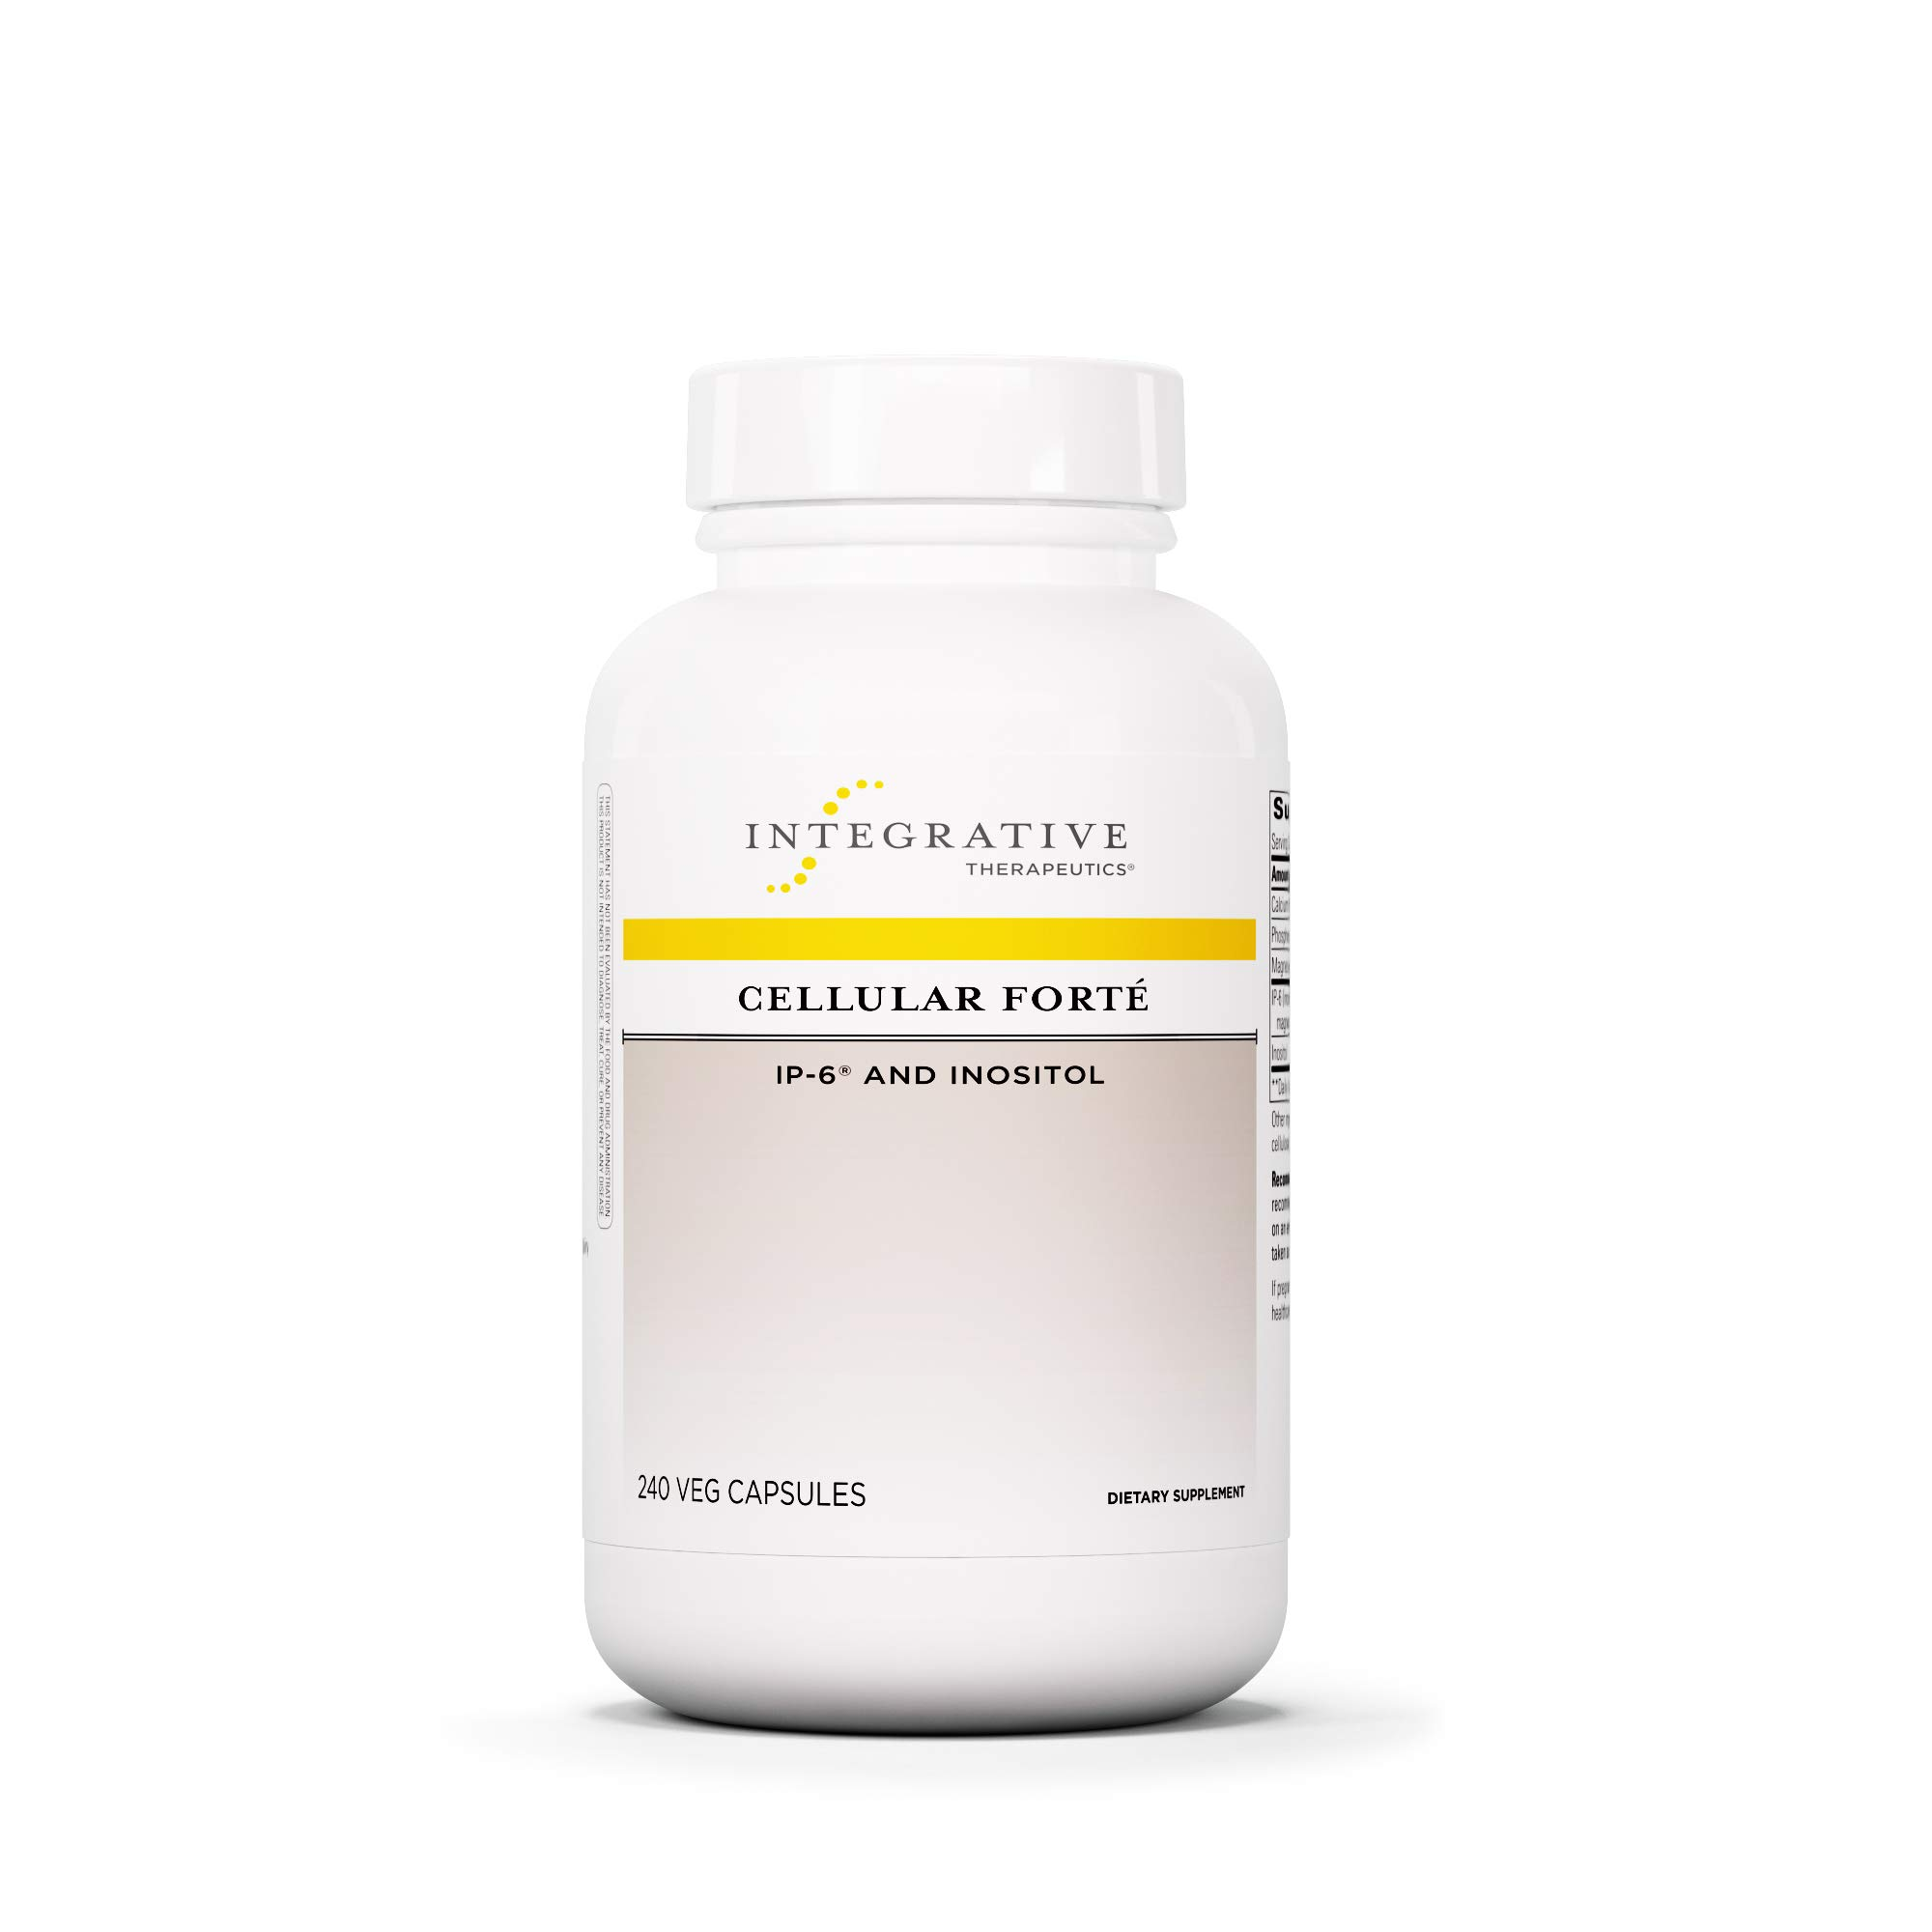 Integrative Therapeutics - Cellular Forte with IP-6 and Inosotol - Immune Support Supplement - 240 Capsules